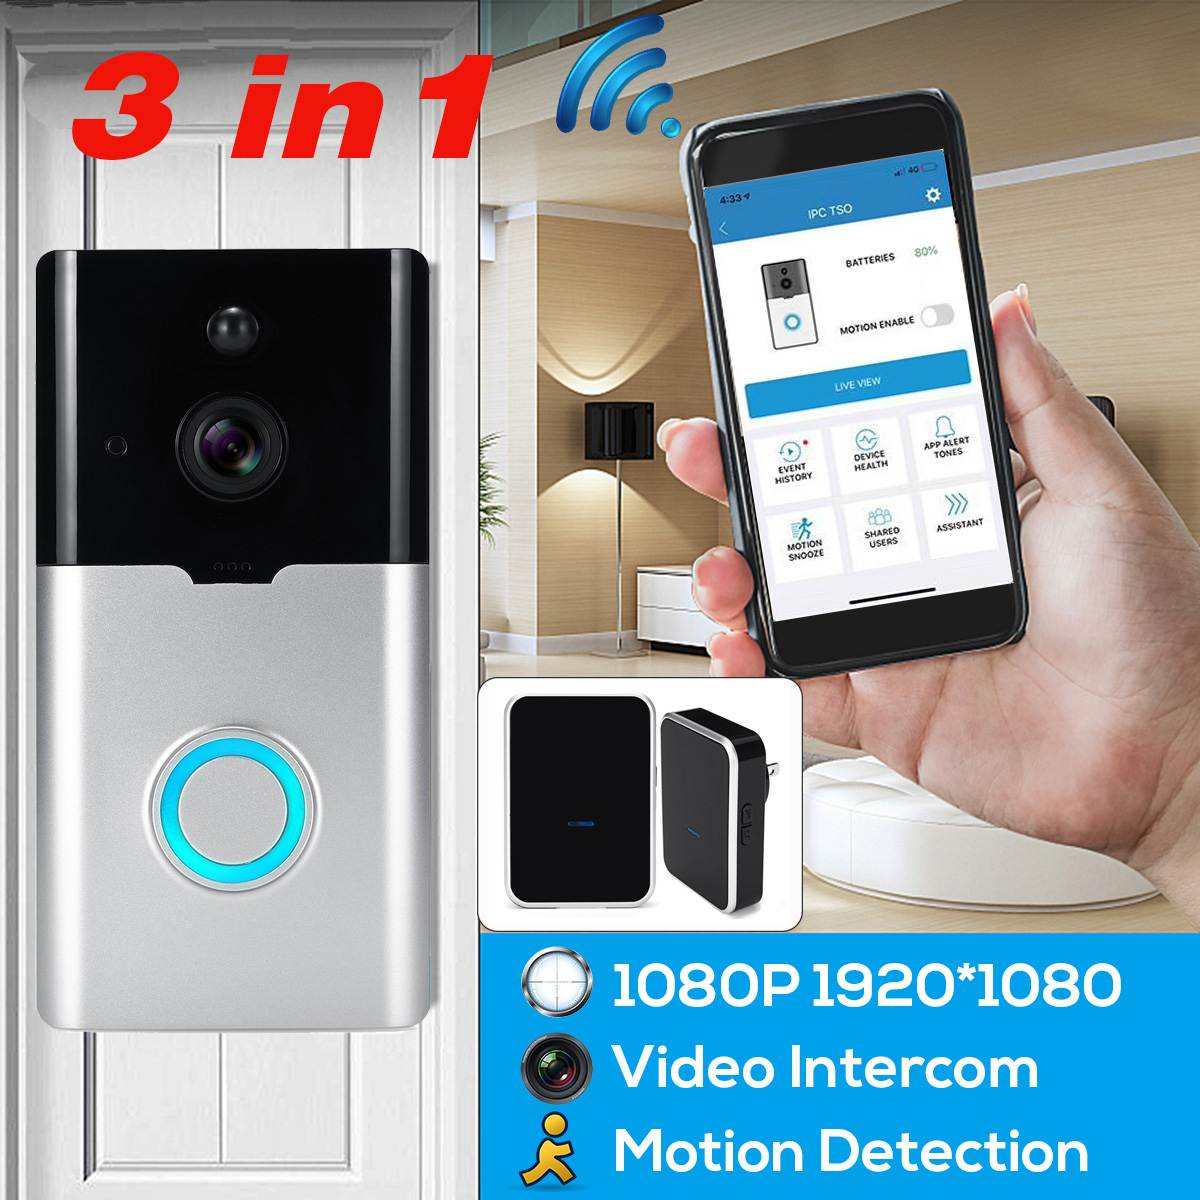 Smart Wifi Video Doorbell Camera 1080P Visual Call Intercom Recording Door Bell Ding Dong Alarm Remote Home Security Monitoring-in Video Intercom from Security & Protection    1